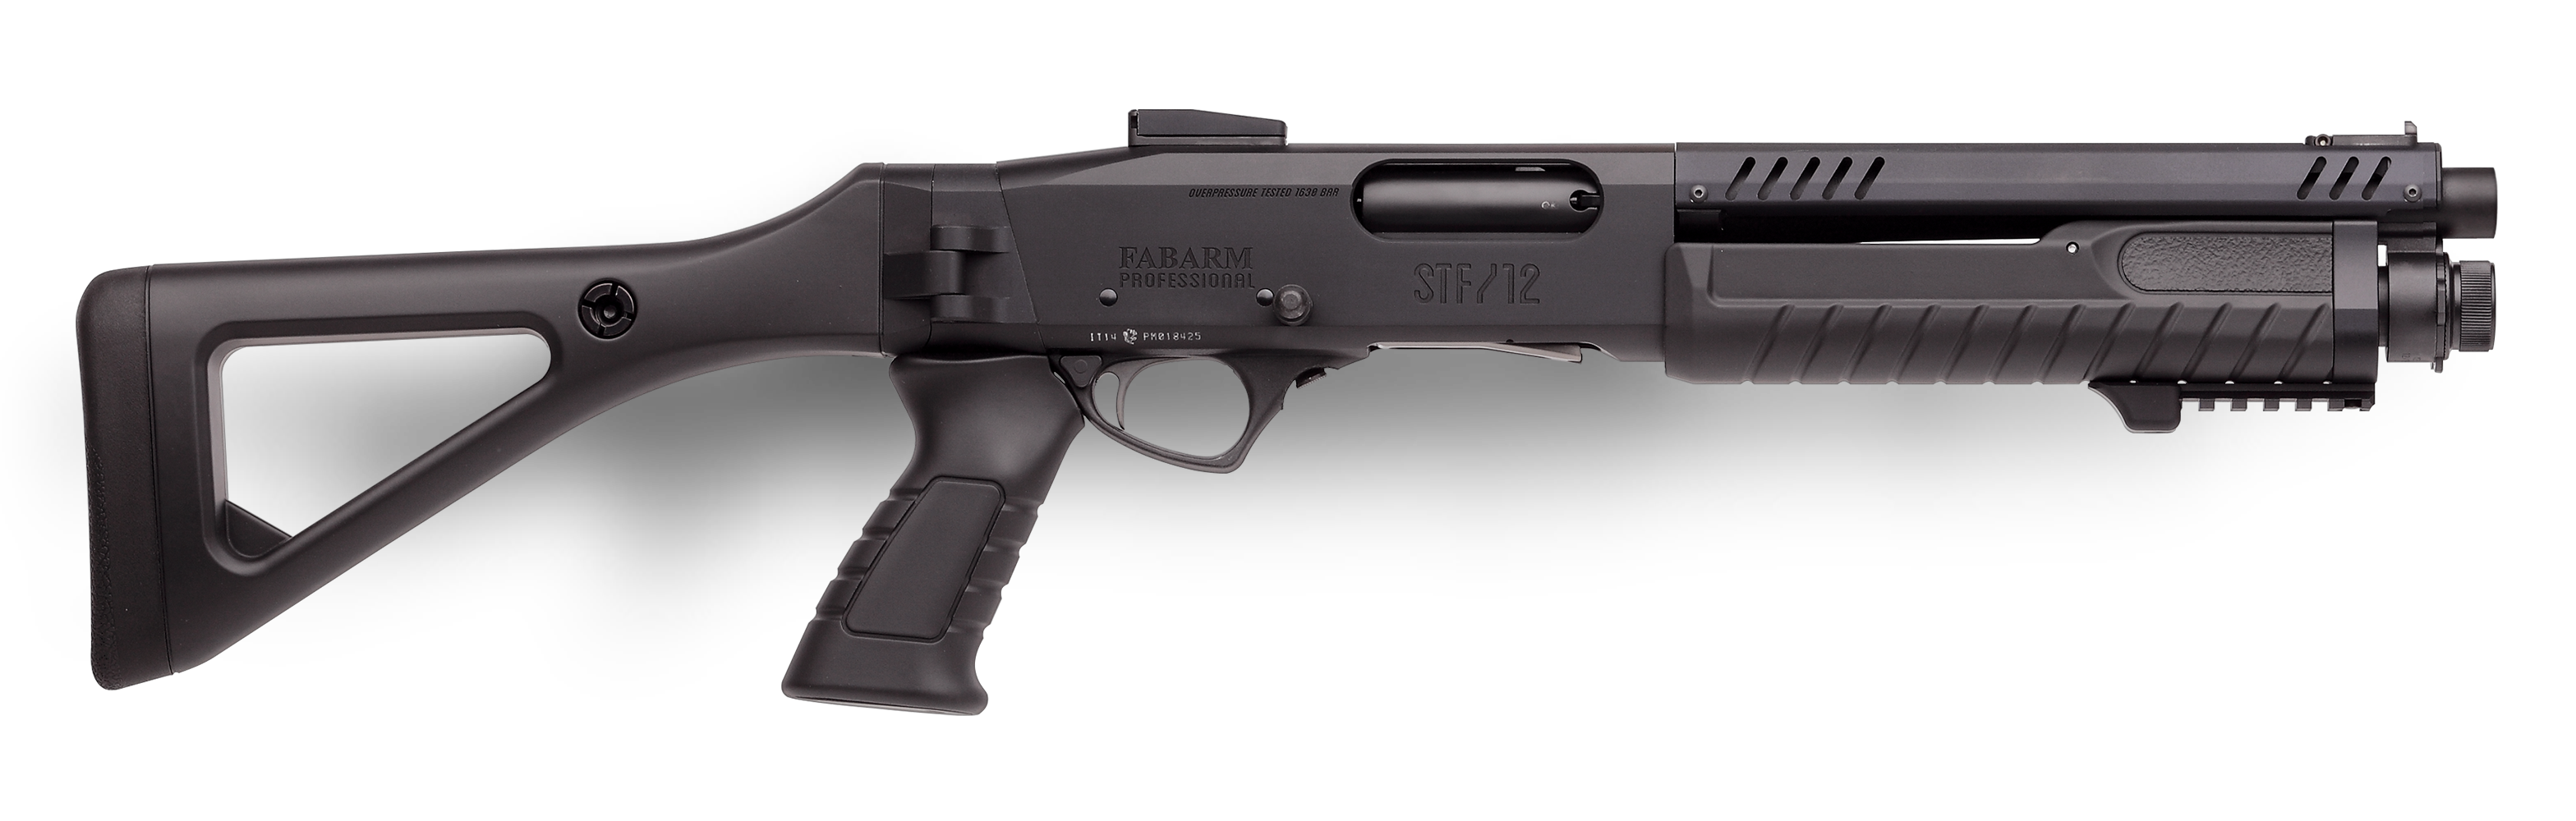 Fabarm STF 12 Compact Initial